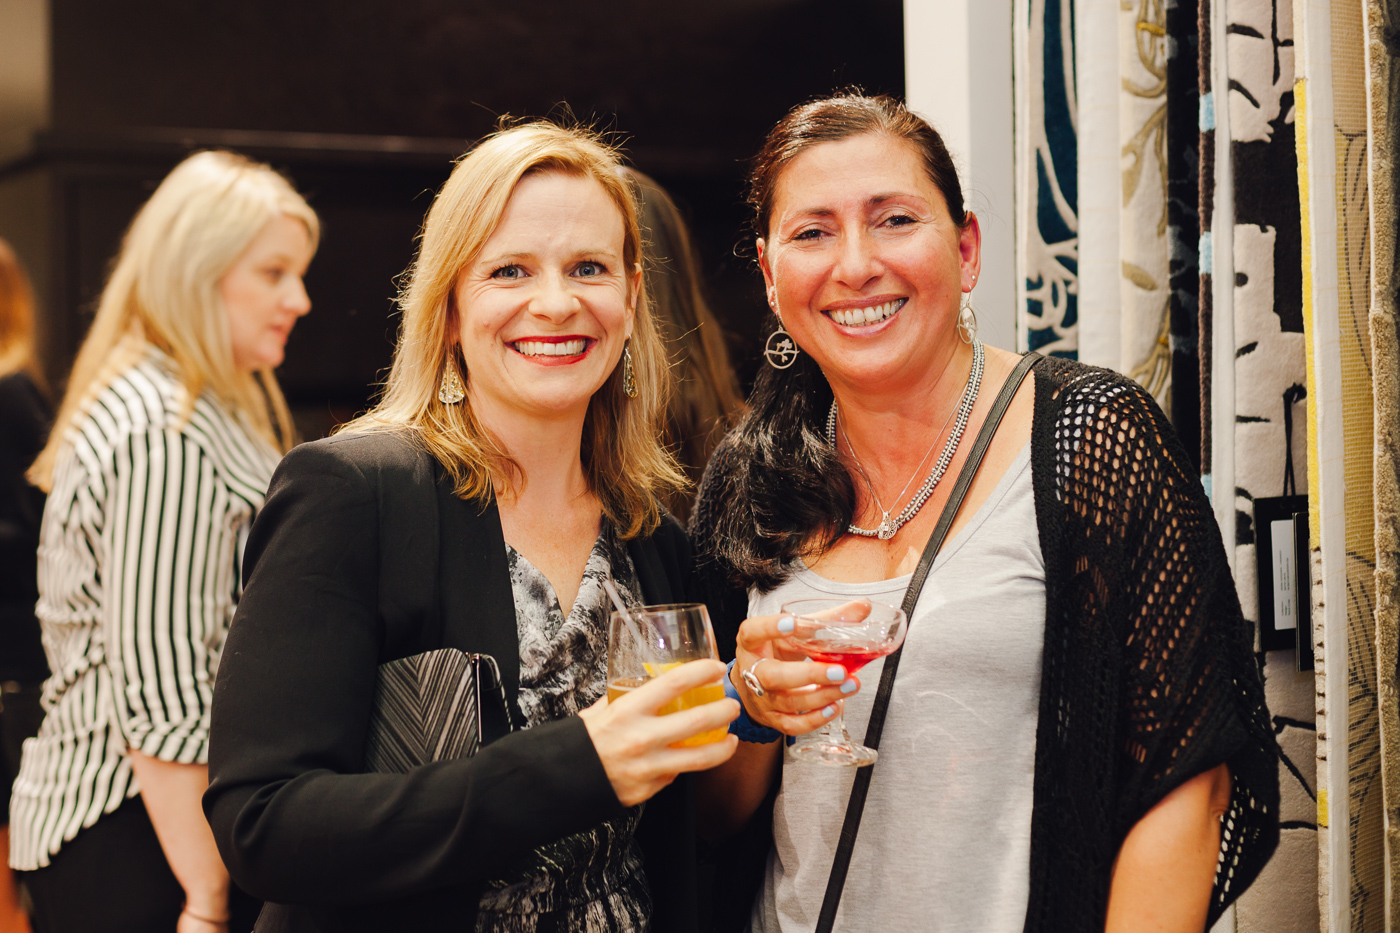 Kristy Taylor & Felicia Bonacci | NEW AGAIN by Petrina Turner Design for Designer Rugs | The launch event